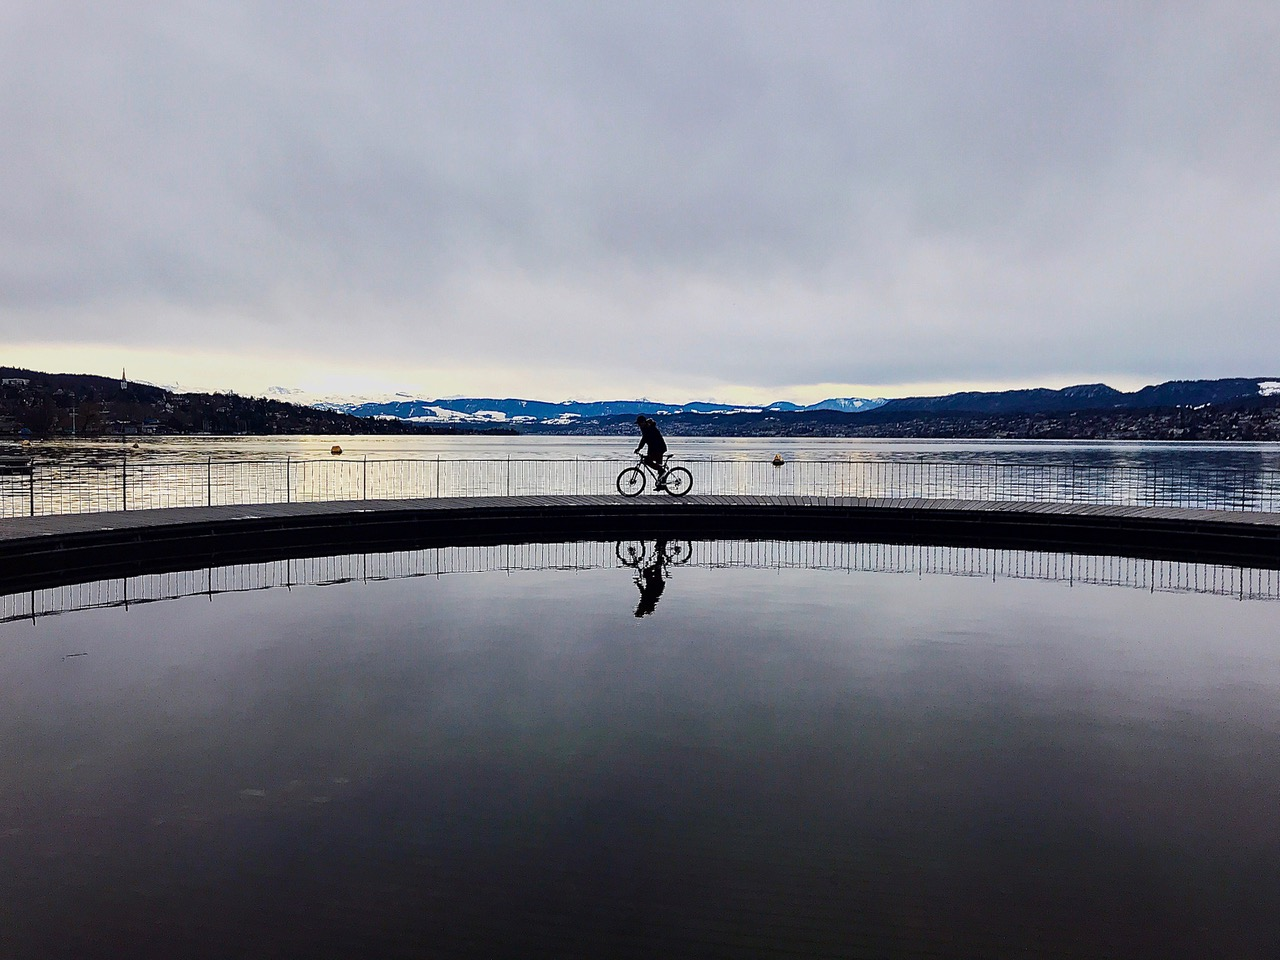 Take A Ride on the Calm Side. Photo by Monica Posnett. Used with permission. Click for a larger image.